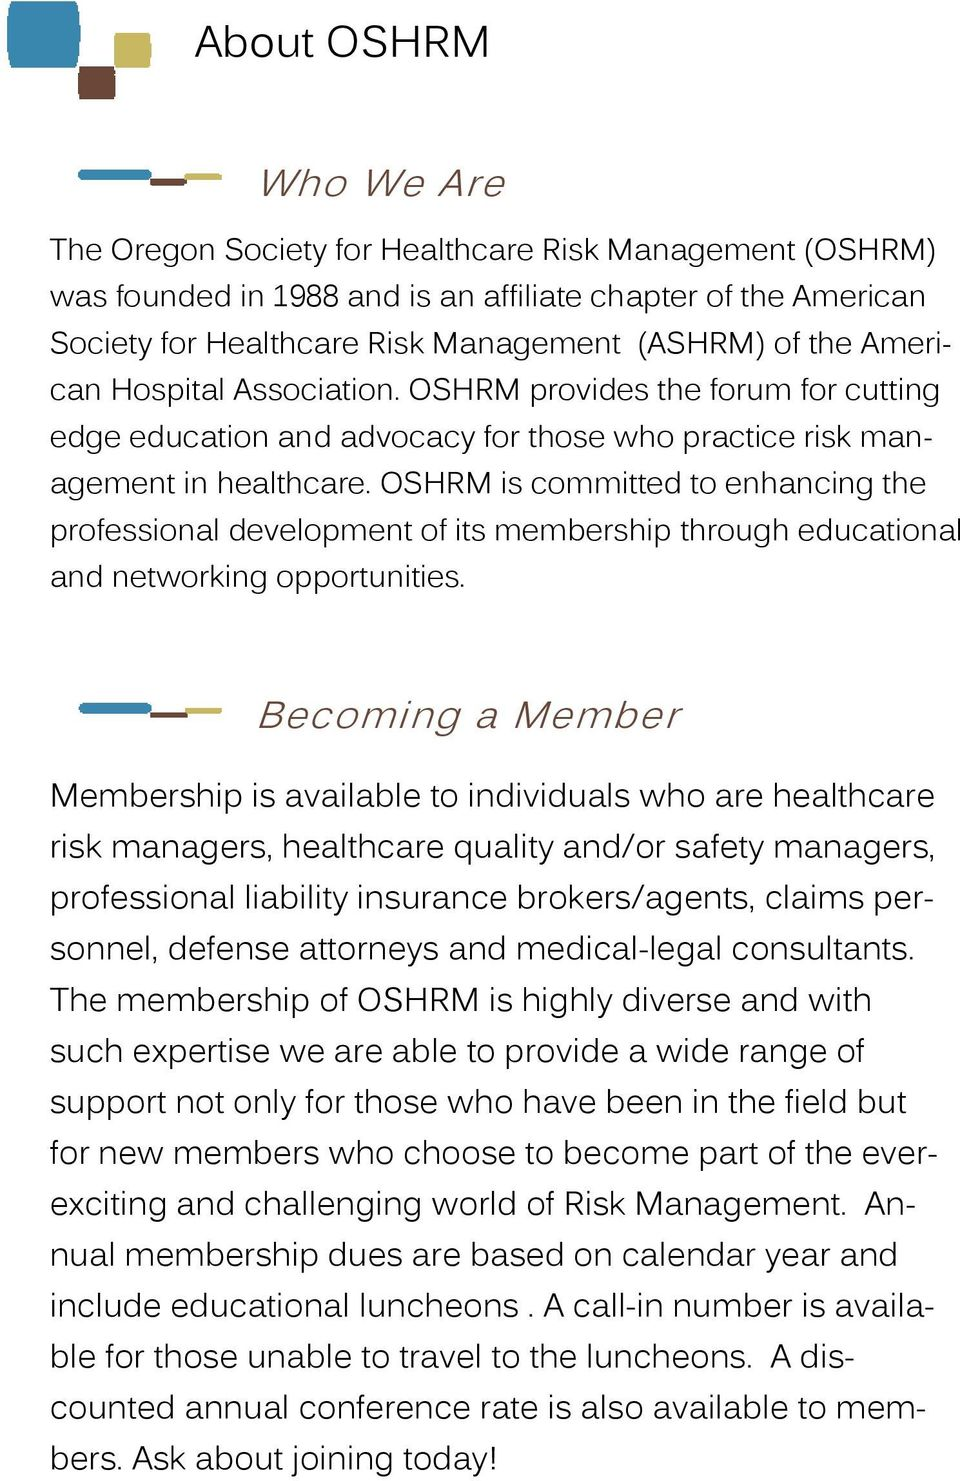 OSHRM is committed to enhancing the professional development of its membership through educational and networking opportunities.